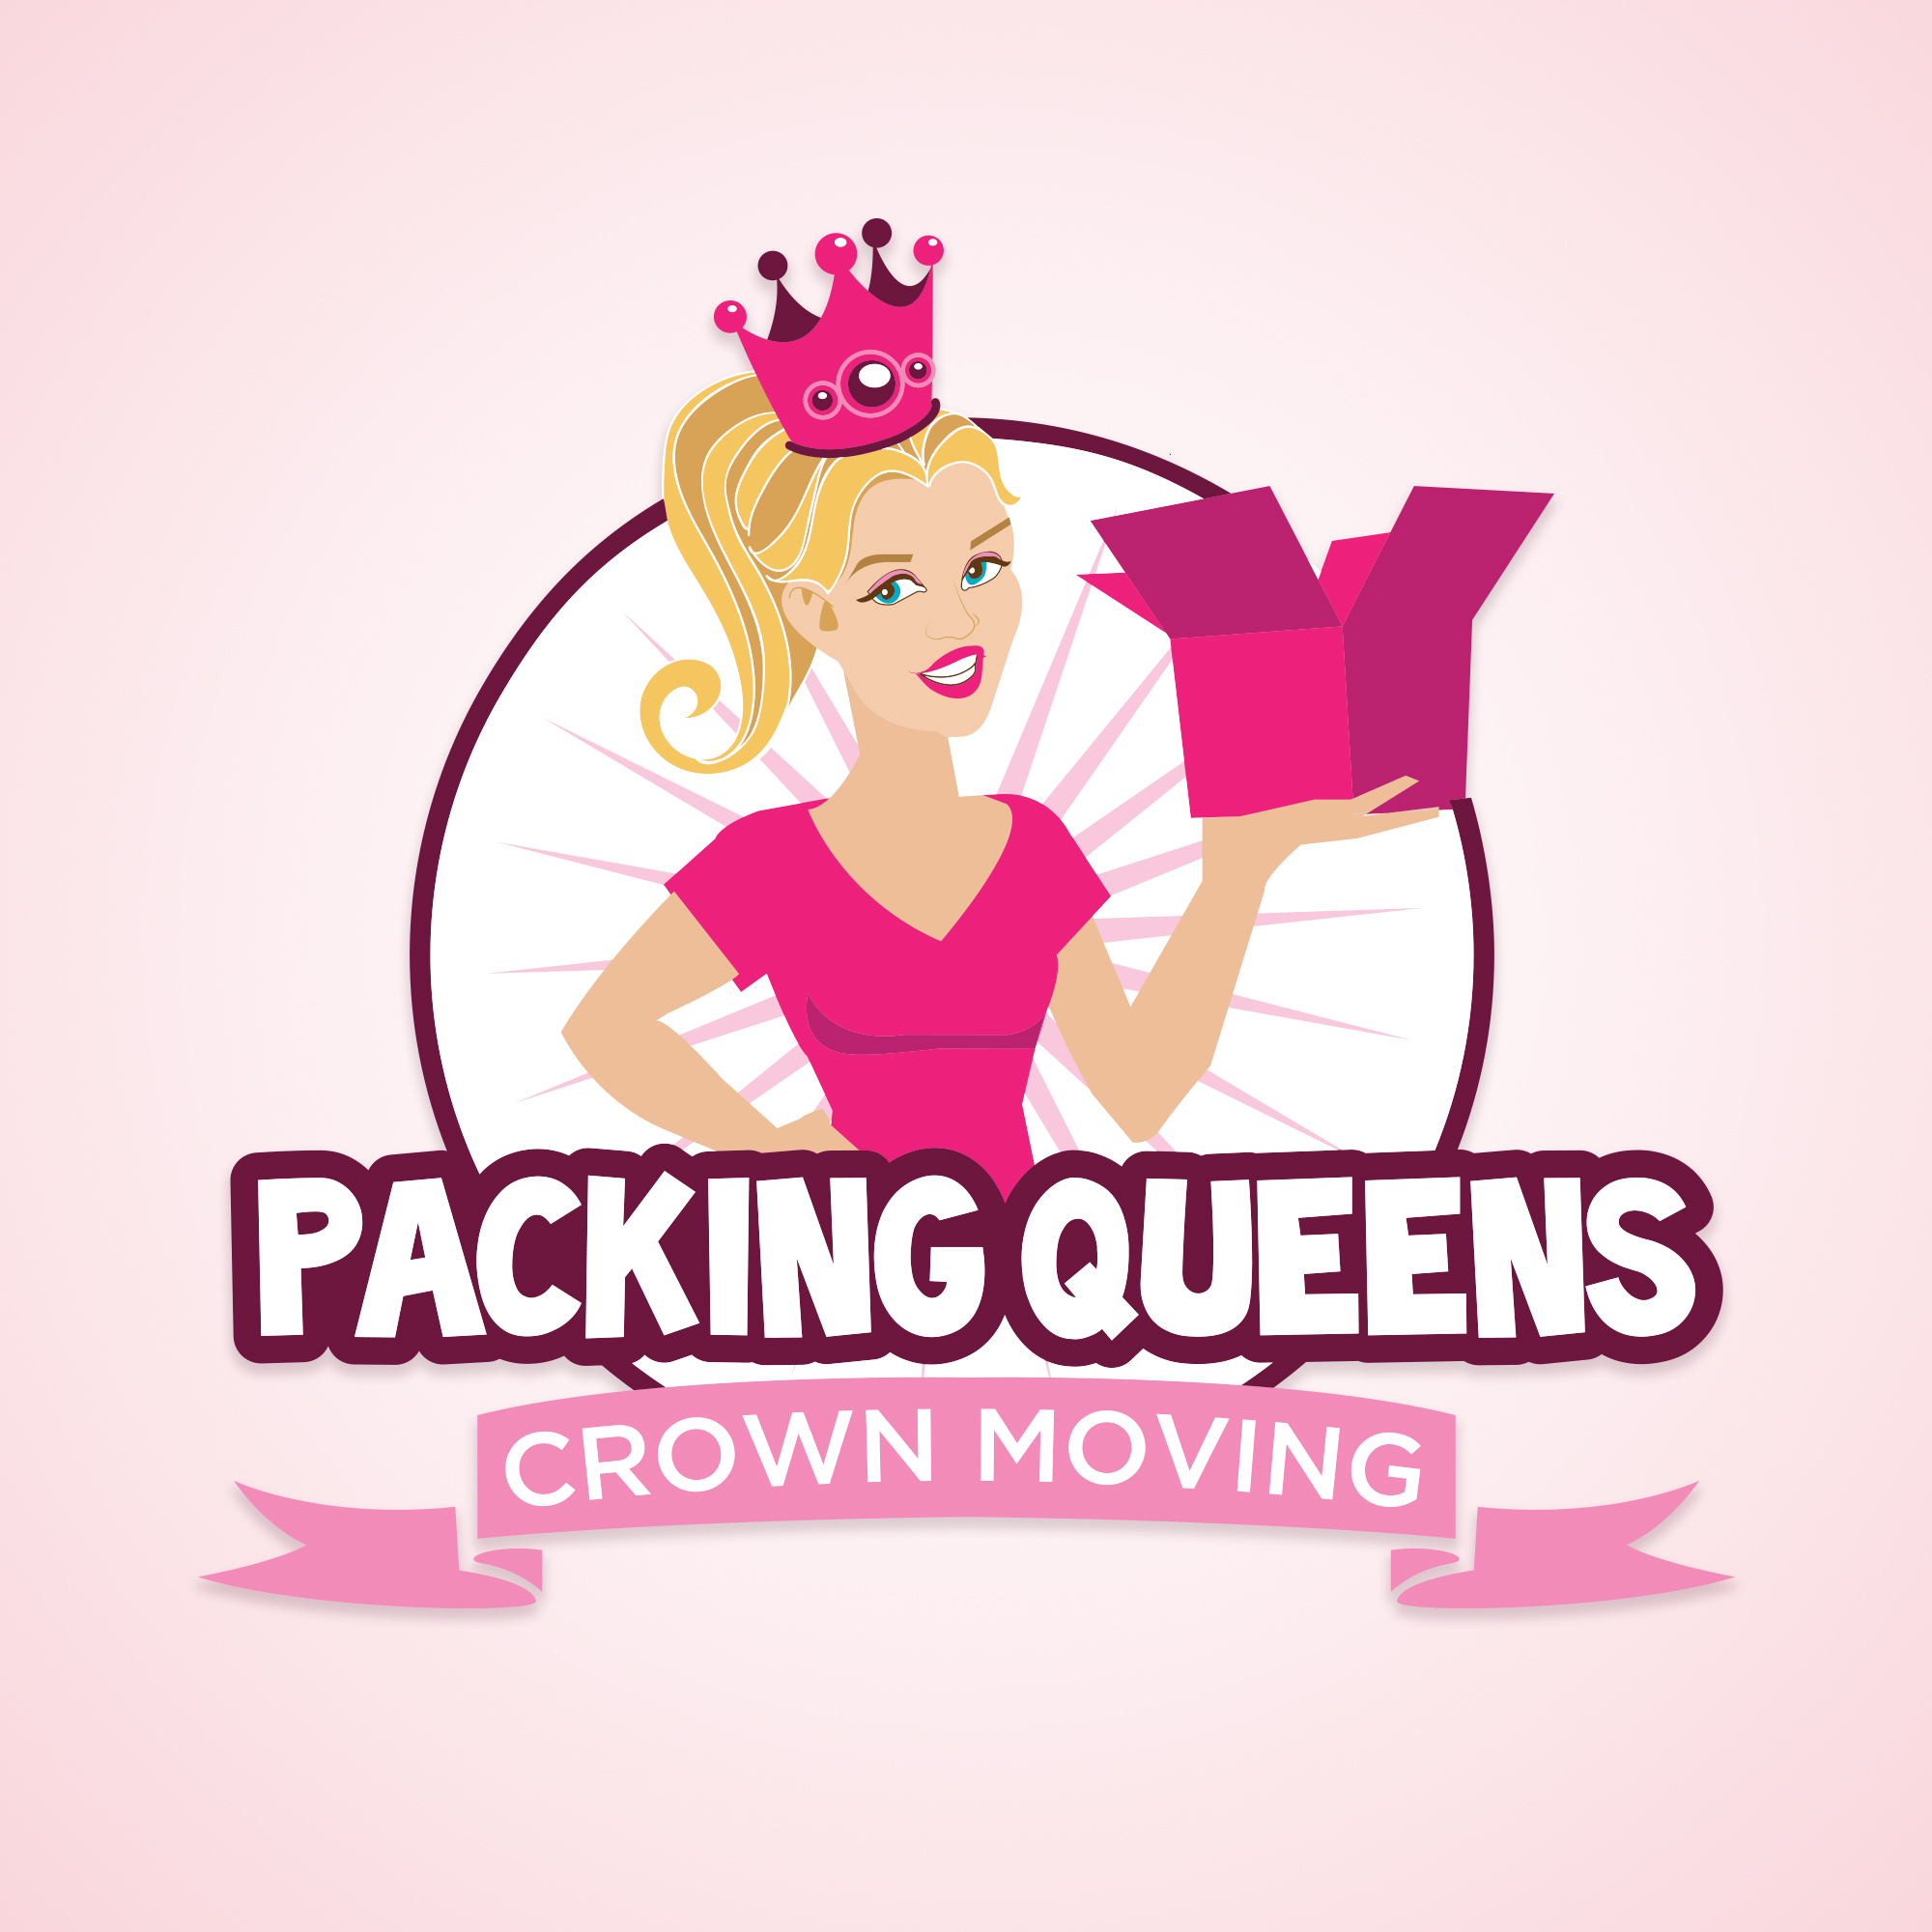 - Packing Queens